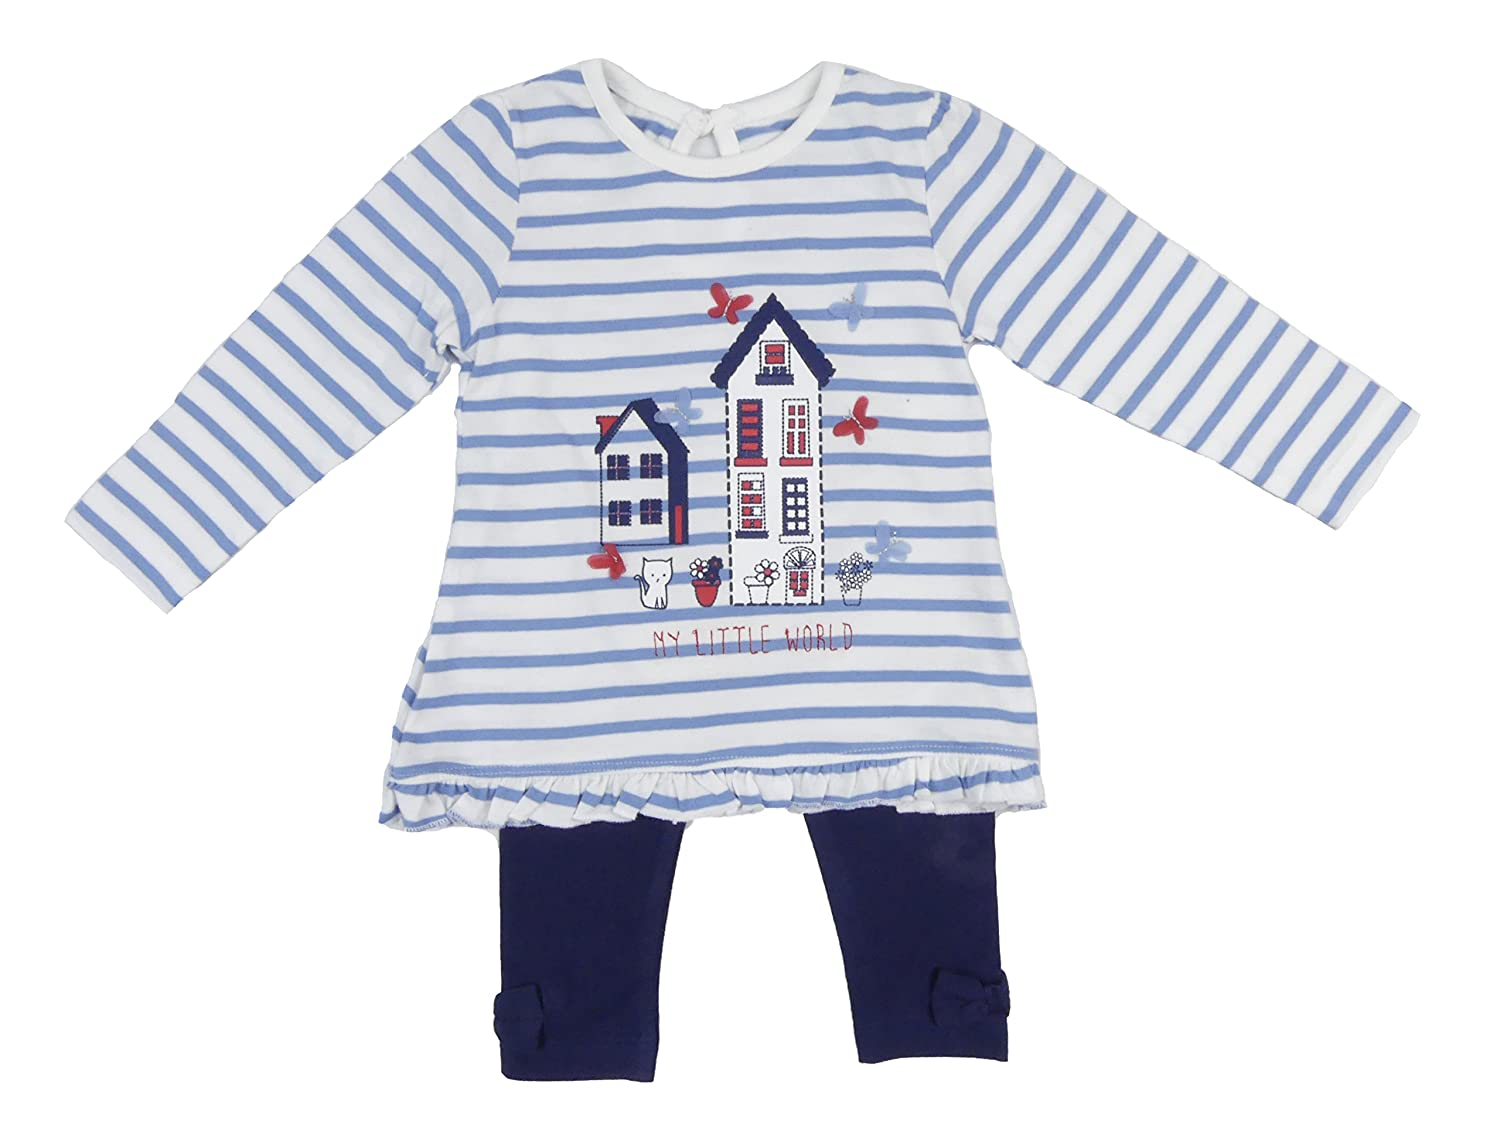 Ex-Store Baby Girls Outfit Leggings Long Sleeve Top Set Pretty House Kitty Butterflies Blues